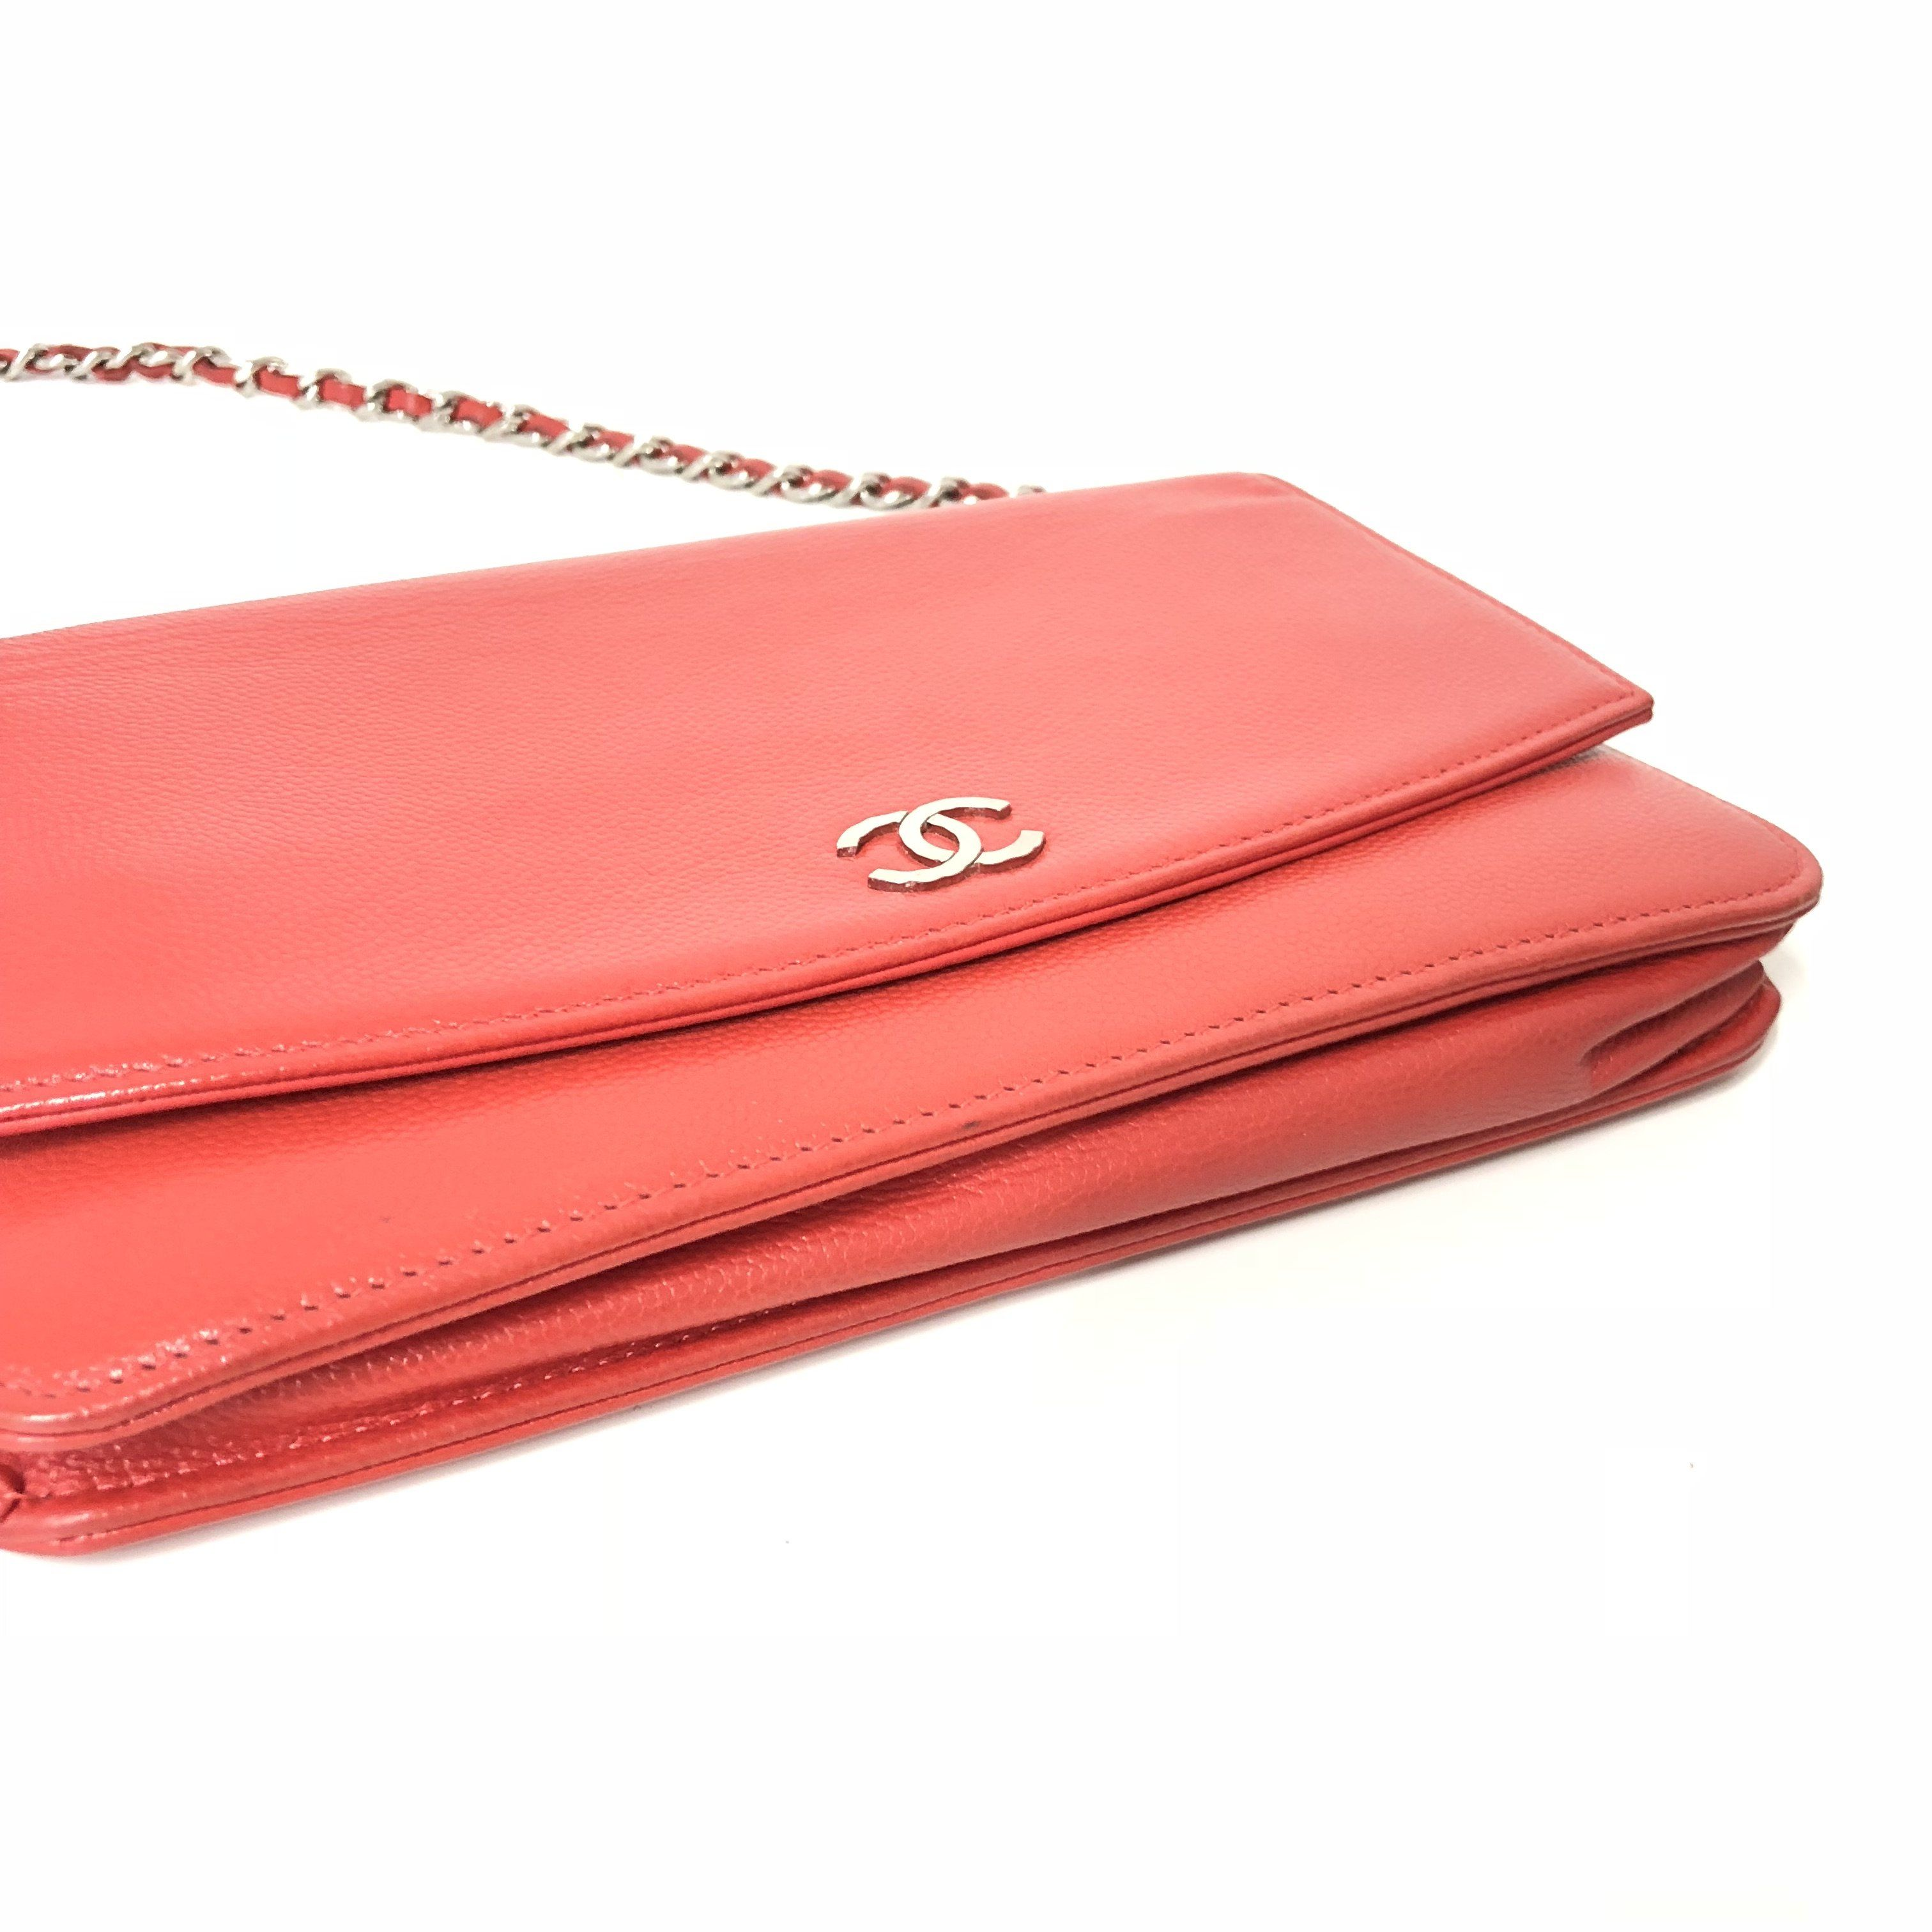 Chanel Caviar Wallet On Chain Red Crossbody Bag